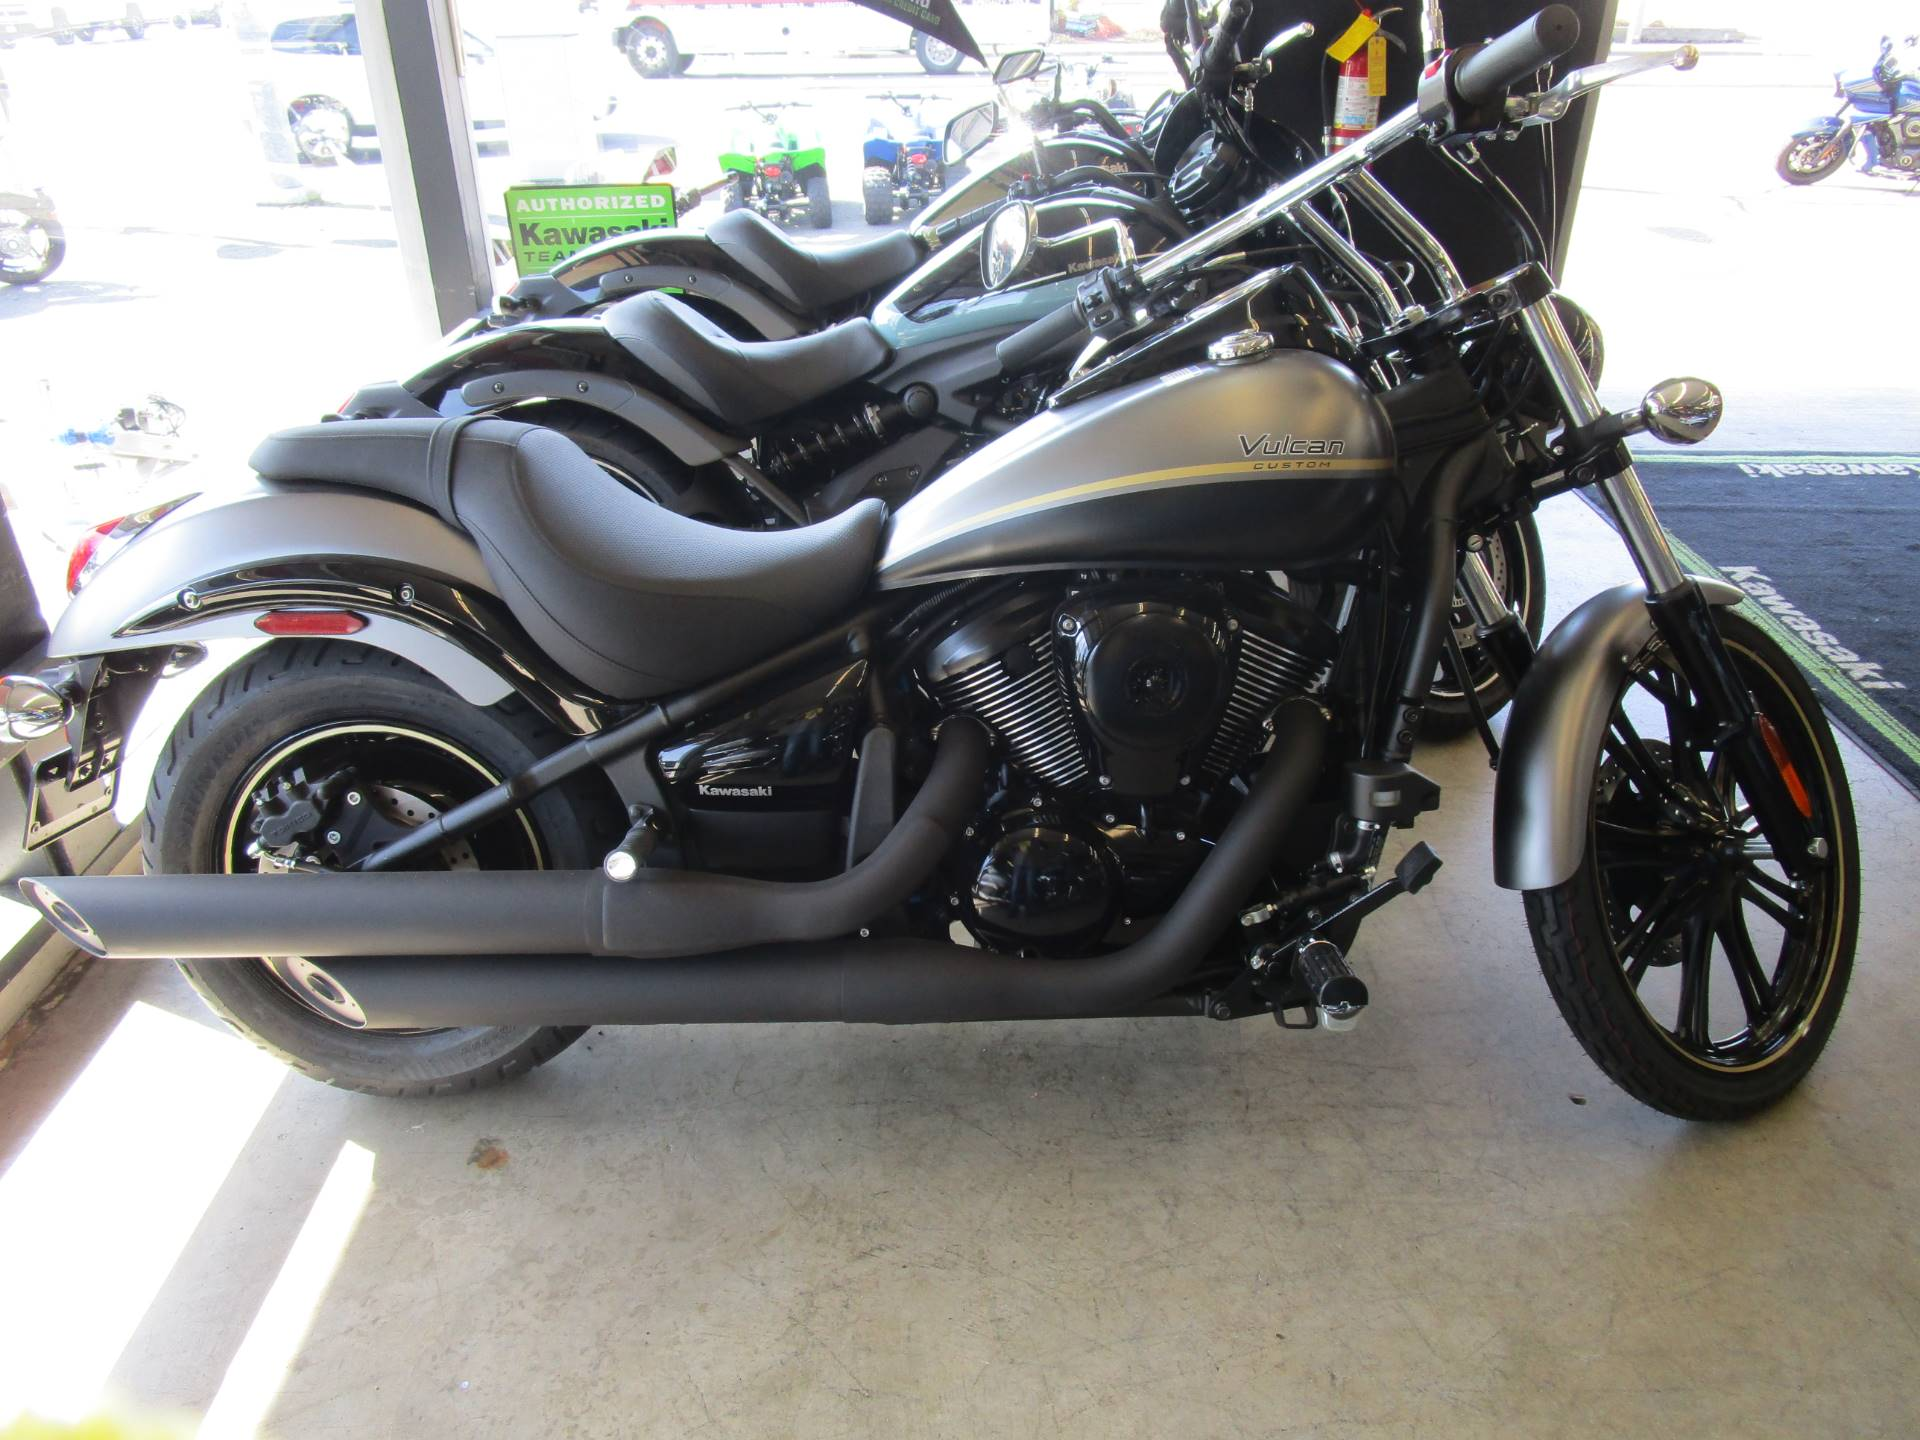 2020 Kawasaki Vulcan 900 Custom in Bellevue, Washington - Photo 1